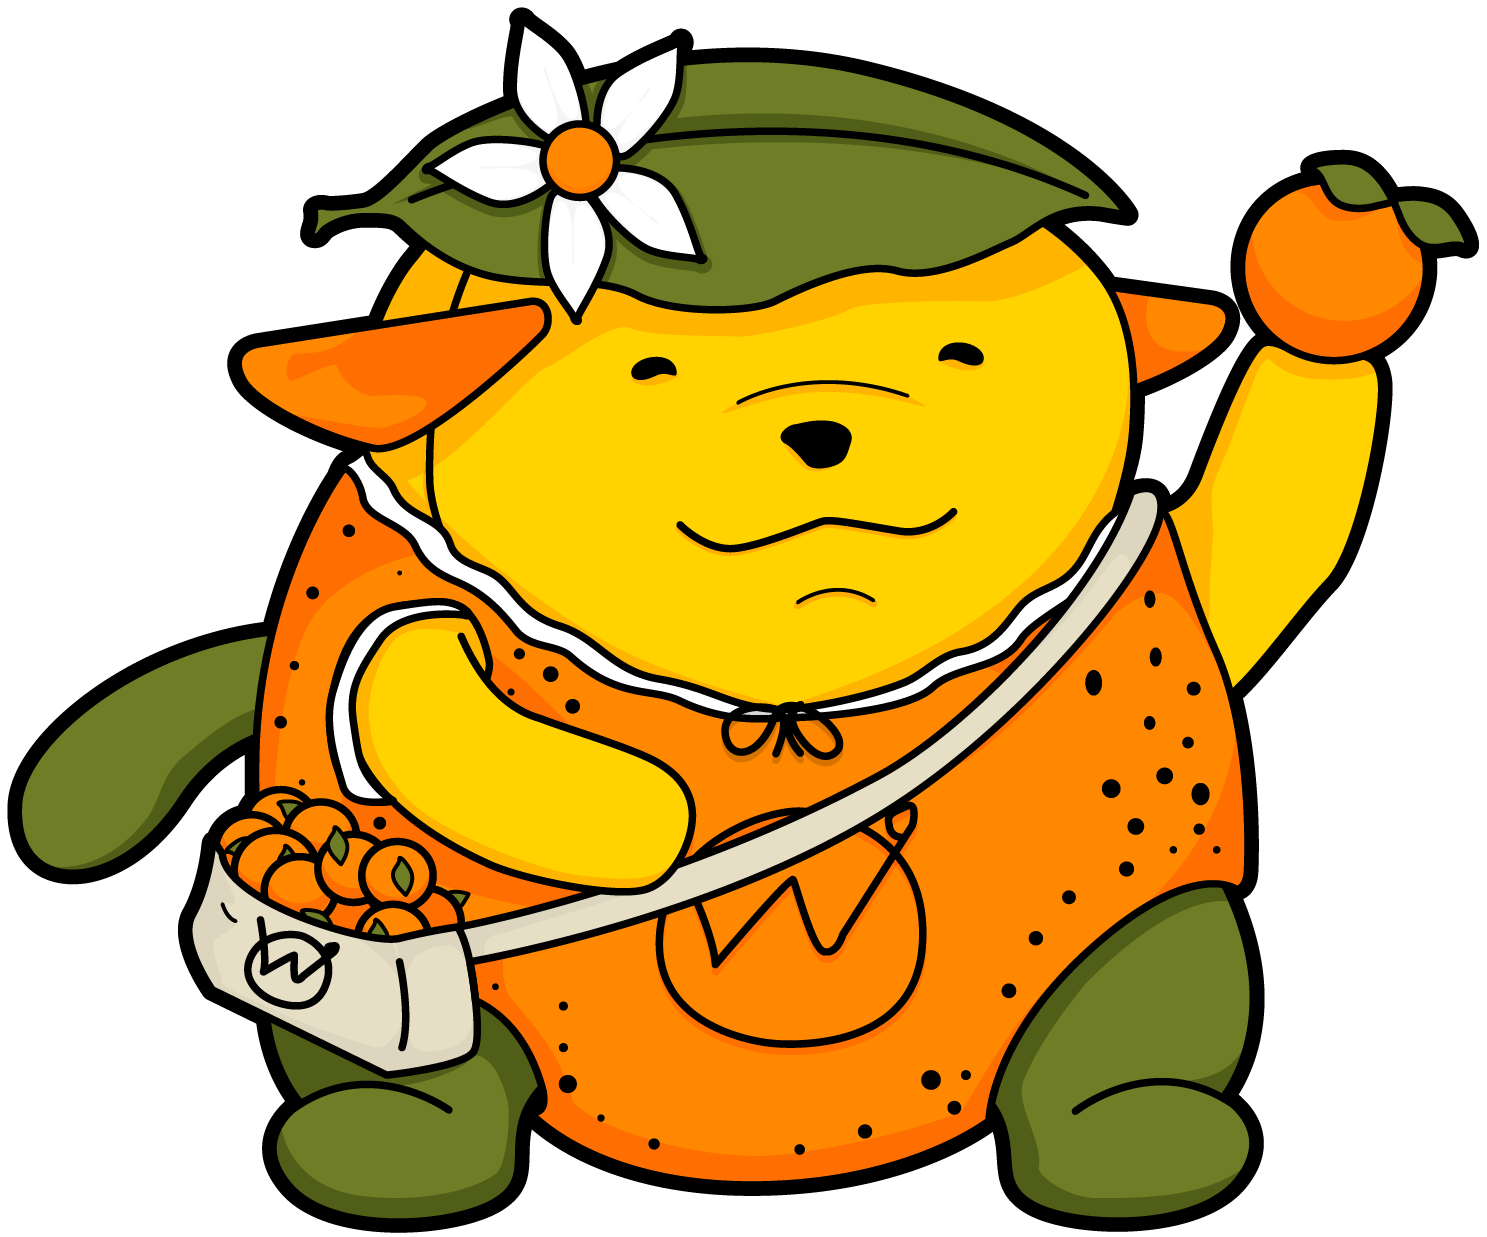 Tangerine the Wapuu